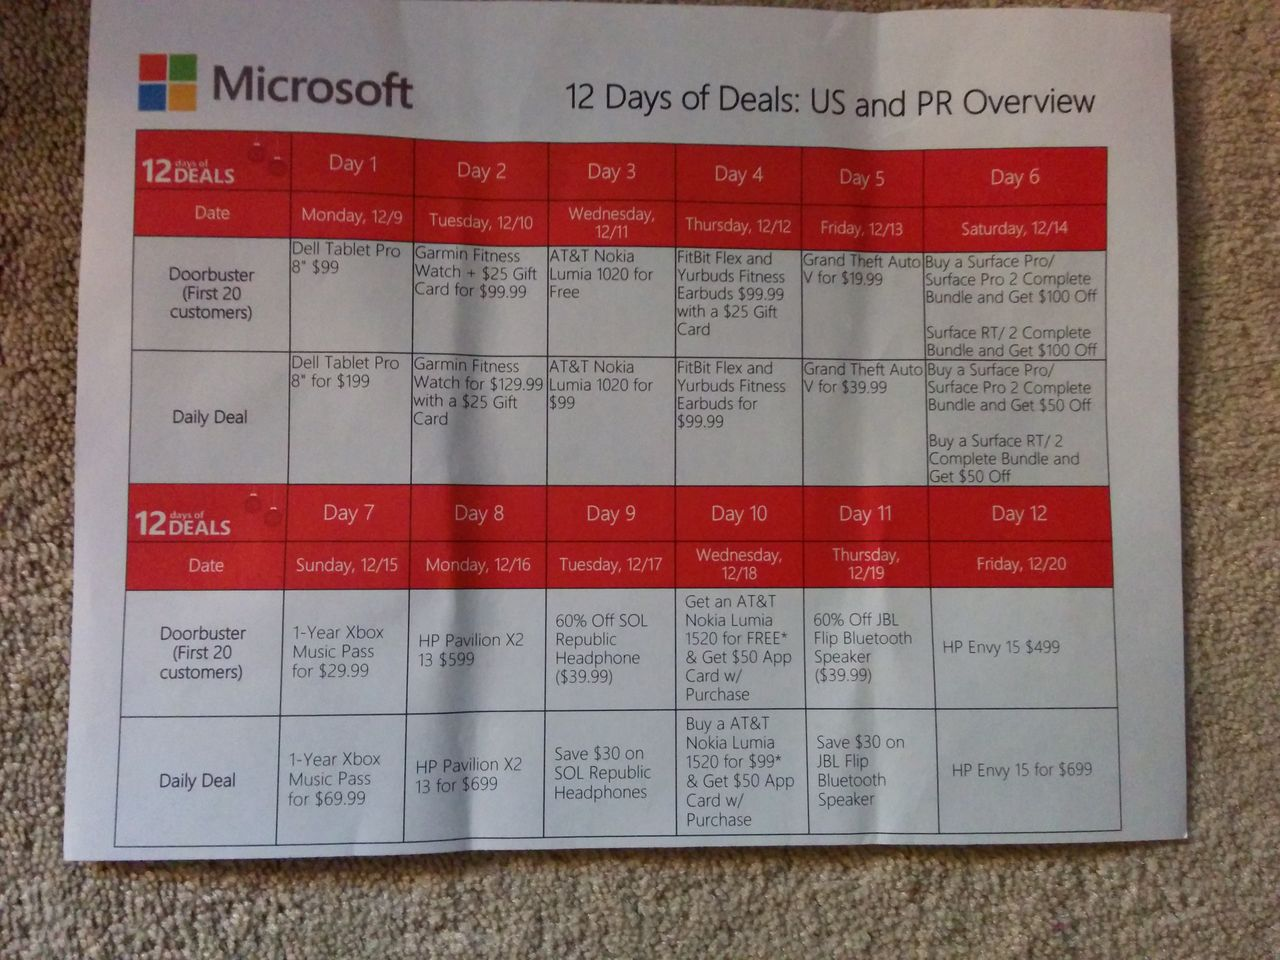 Microsoft Store '12 Days of Deals' promotion in the US allegedly leaks